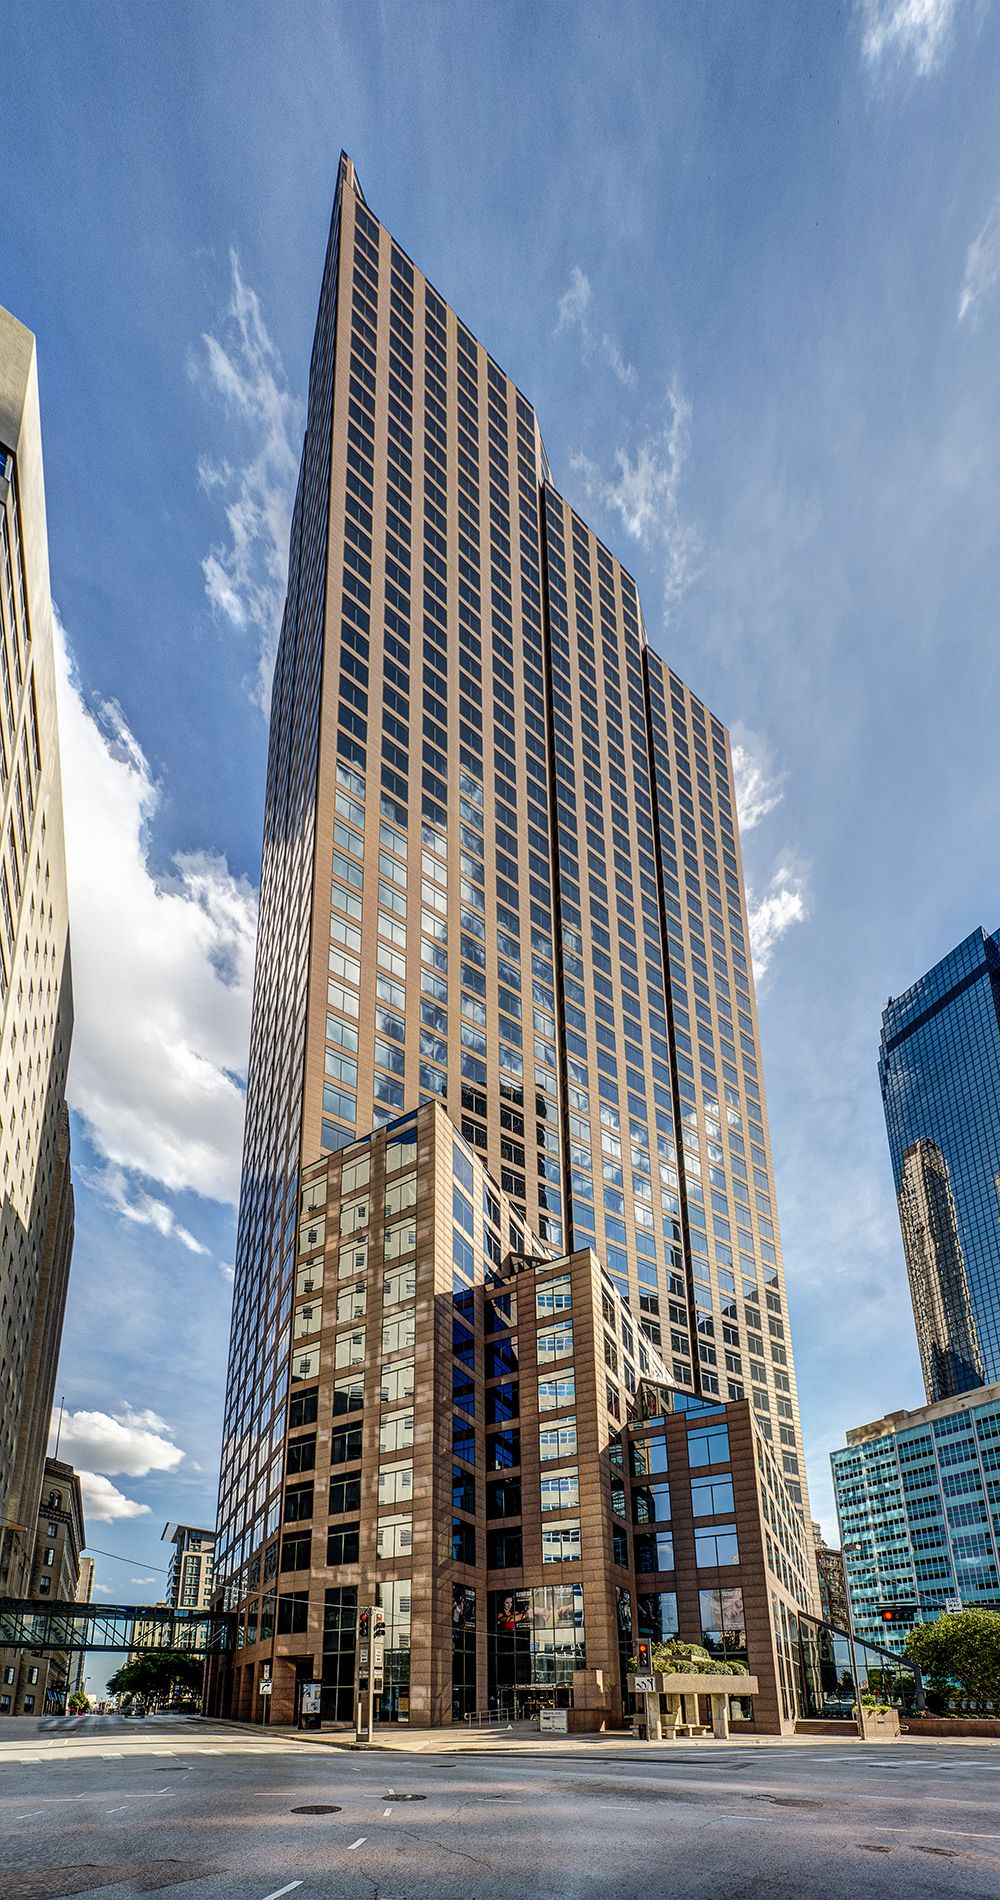 Akin Gump now has about 90 attorneys working in the 49-story 1700 Pacific tower downtown.